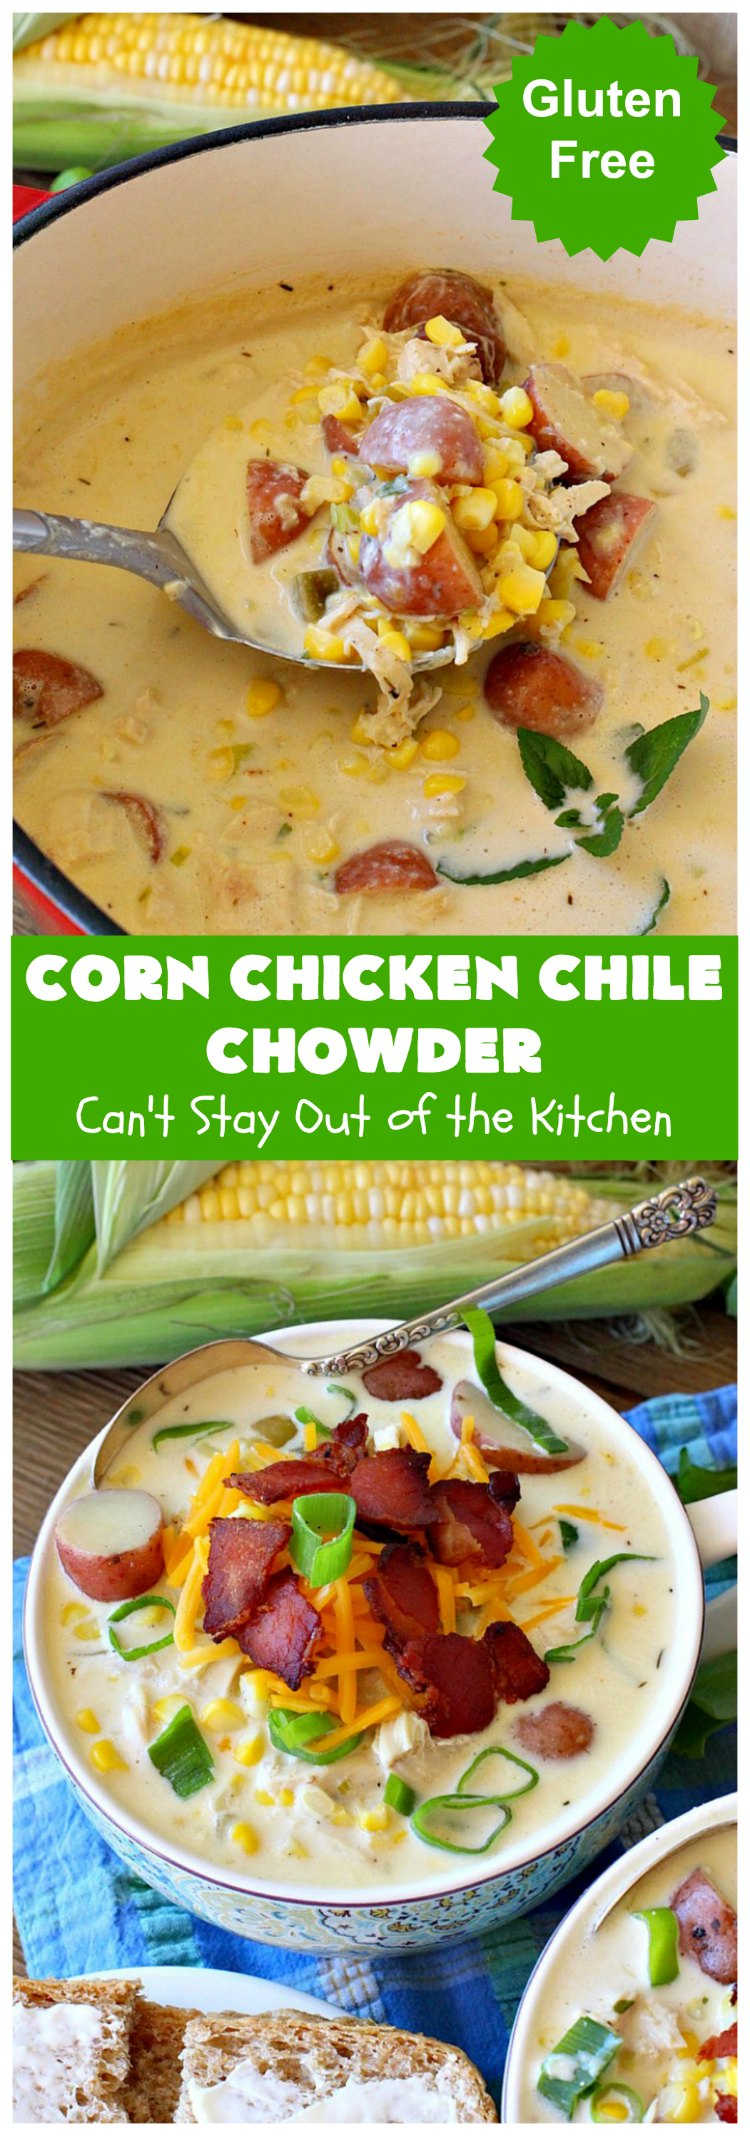 Corn Chicken Chile Chowder | Can't Stay Out of the Kitchen | this fantastic #TexMex #soup is hearty, satisfying & so filling. It's filled with Southwestern flavors that give it zest, but it's not overpowering. #corn #chicken #chowder #GreenChilies #CornChowder #GlutenFree #CornChickenChileChowder